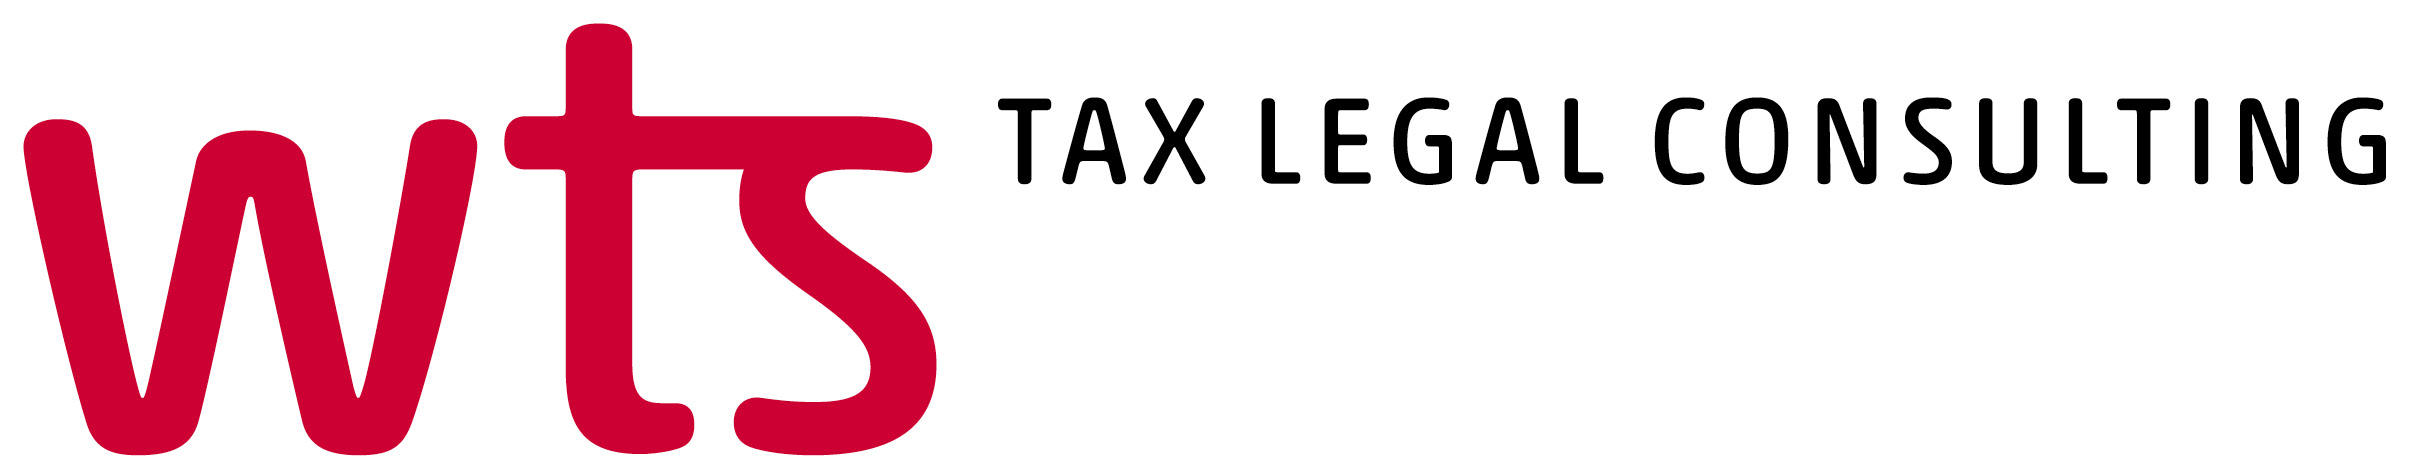 WTS Tax Legal Consulting